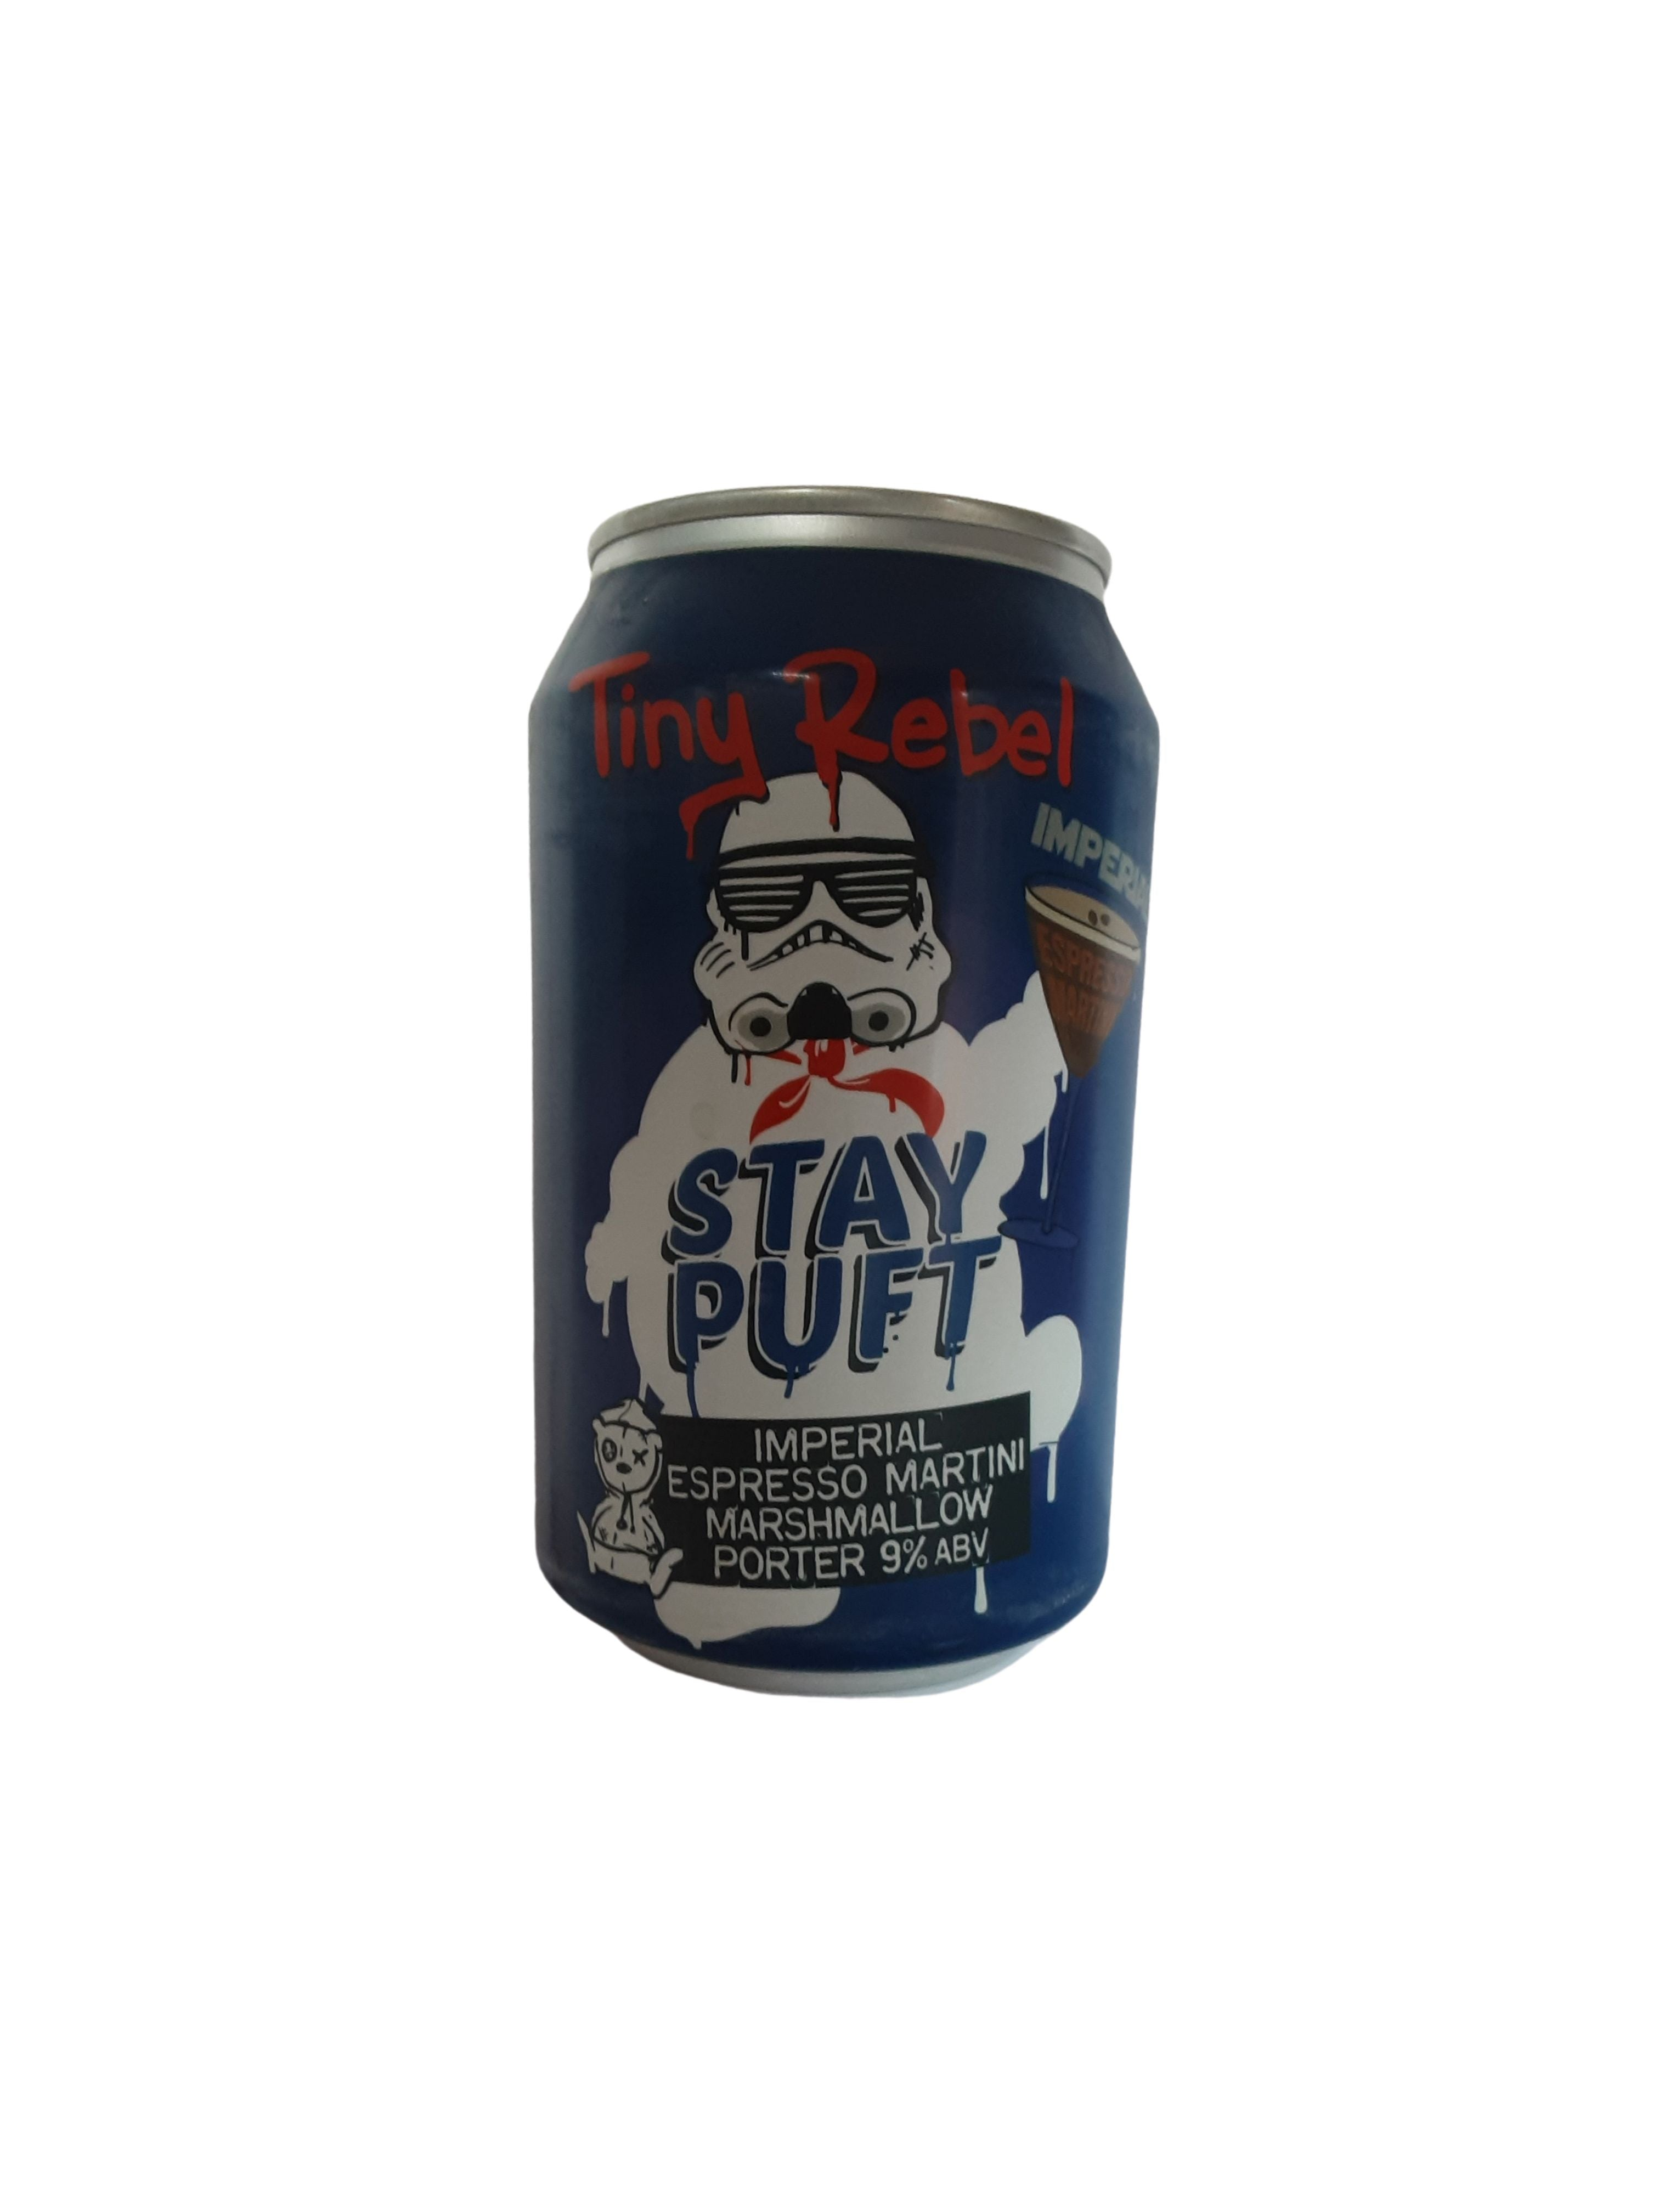 Tiny Rebel - Stay Puft Imperial Espresso Martini Marshmallow Porter - Imperial Porter - 9% (4.03)